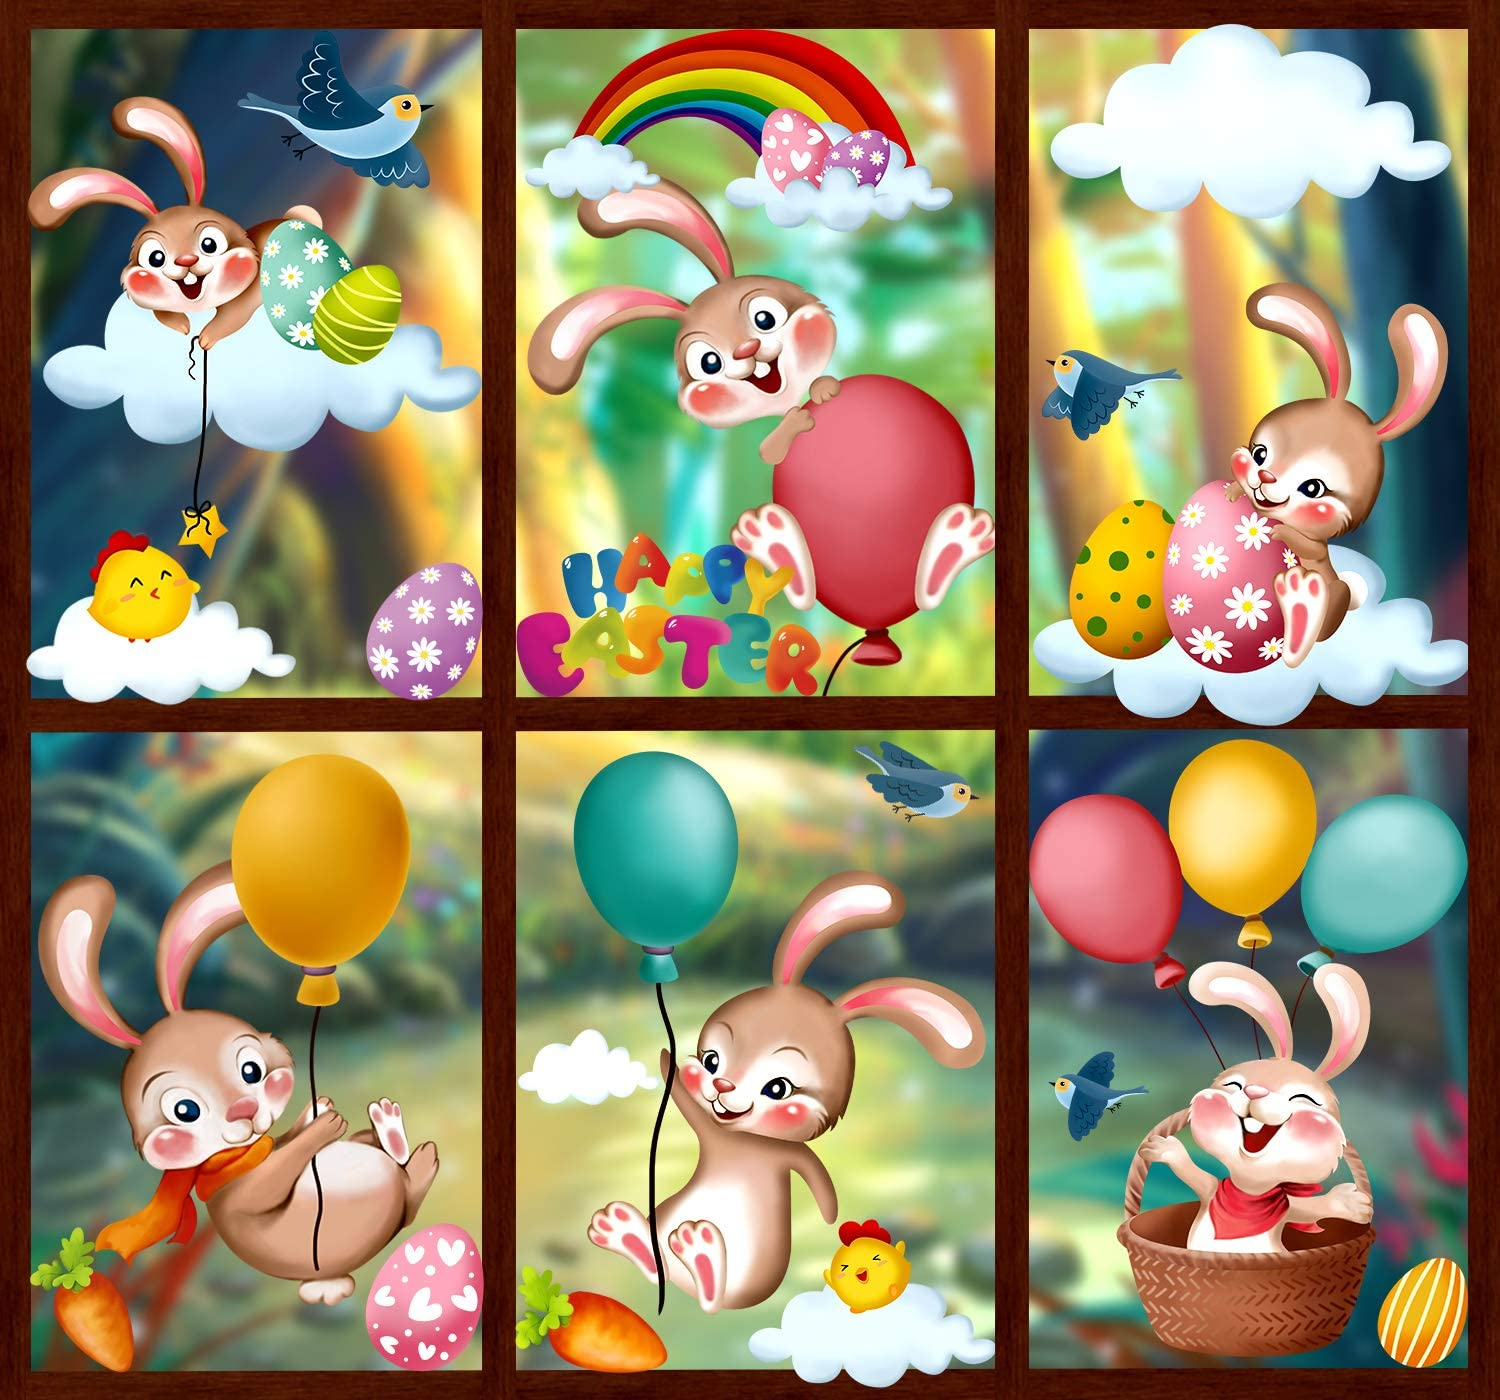 VEYLIN 100Pcs Easter Window Clings, Cute Bunny Eggs Window Stickers for Easter Party Favors